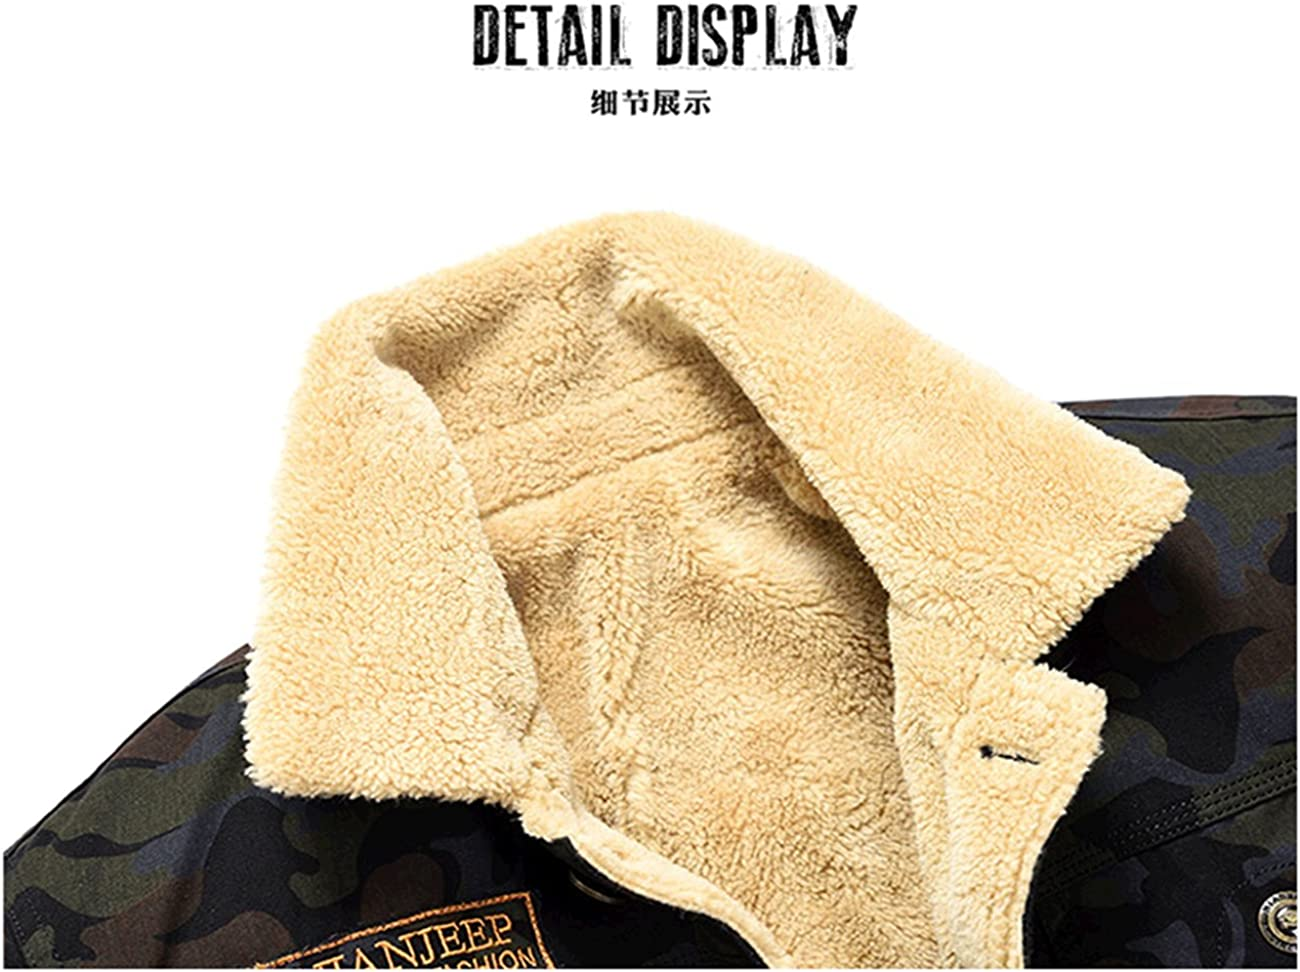 K3K Autumn Winter New Mens Camouflage Warm Coat Faux Fur Lined Thick Jacket